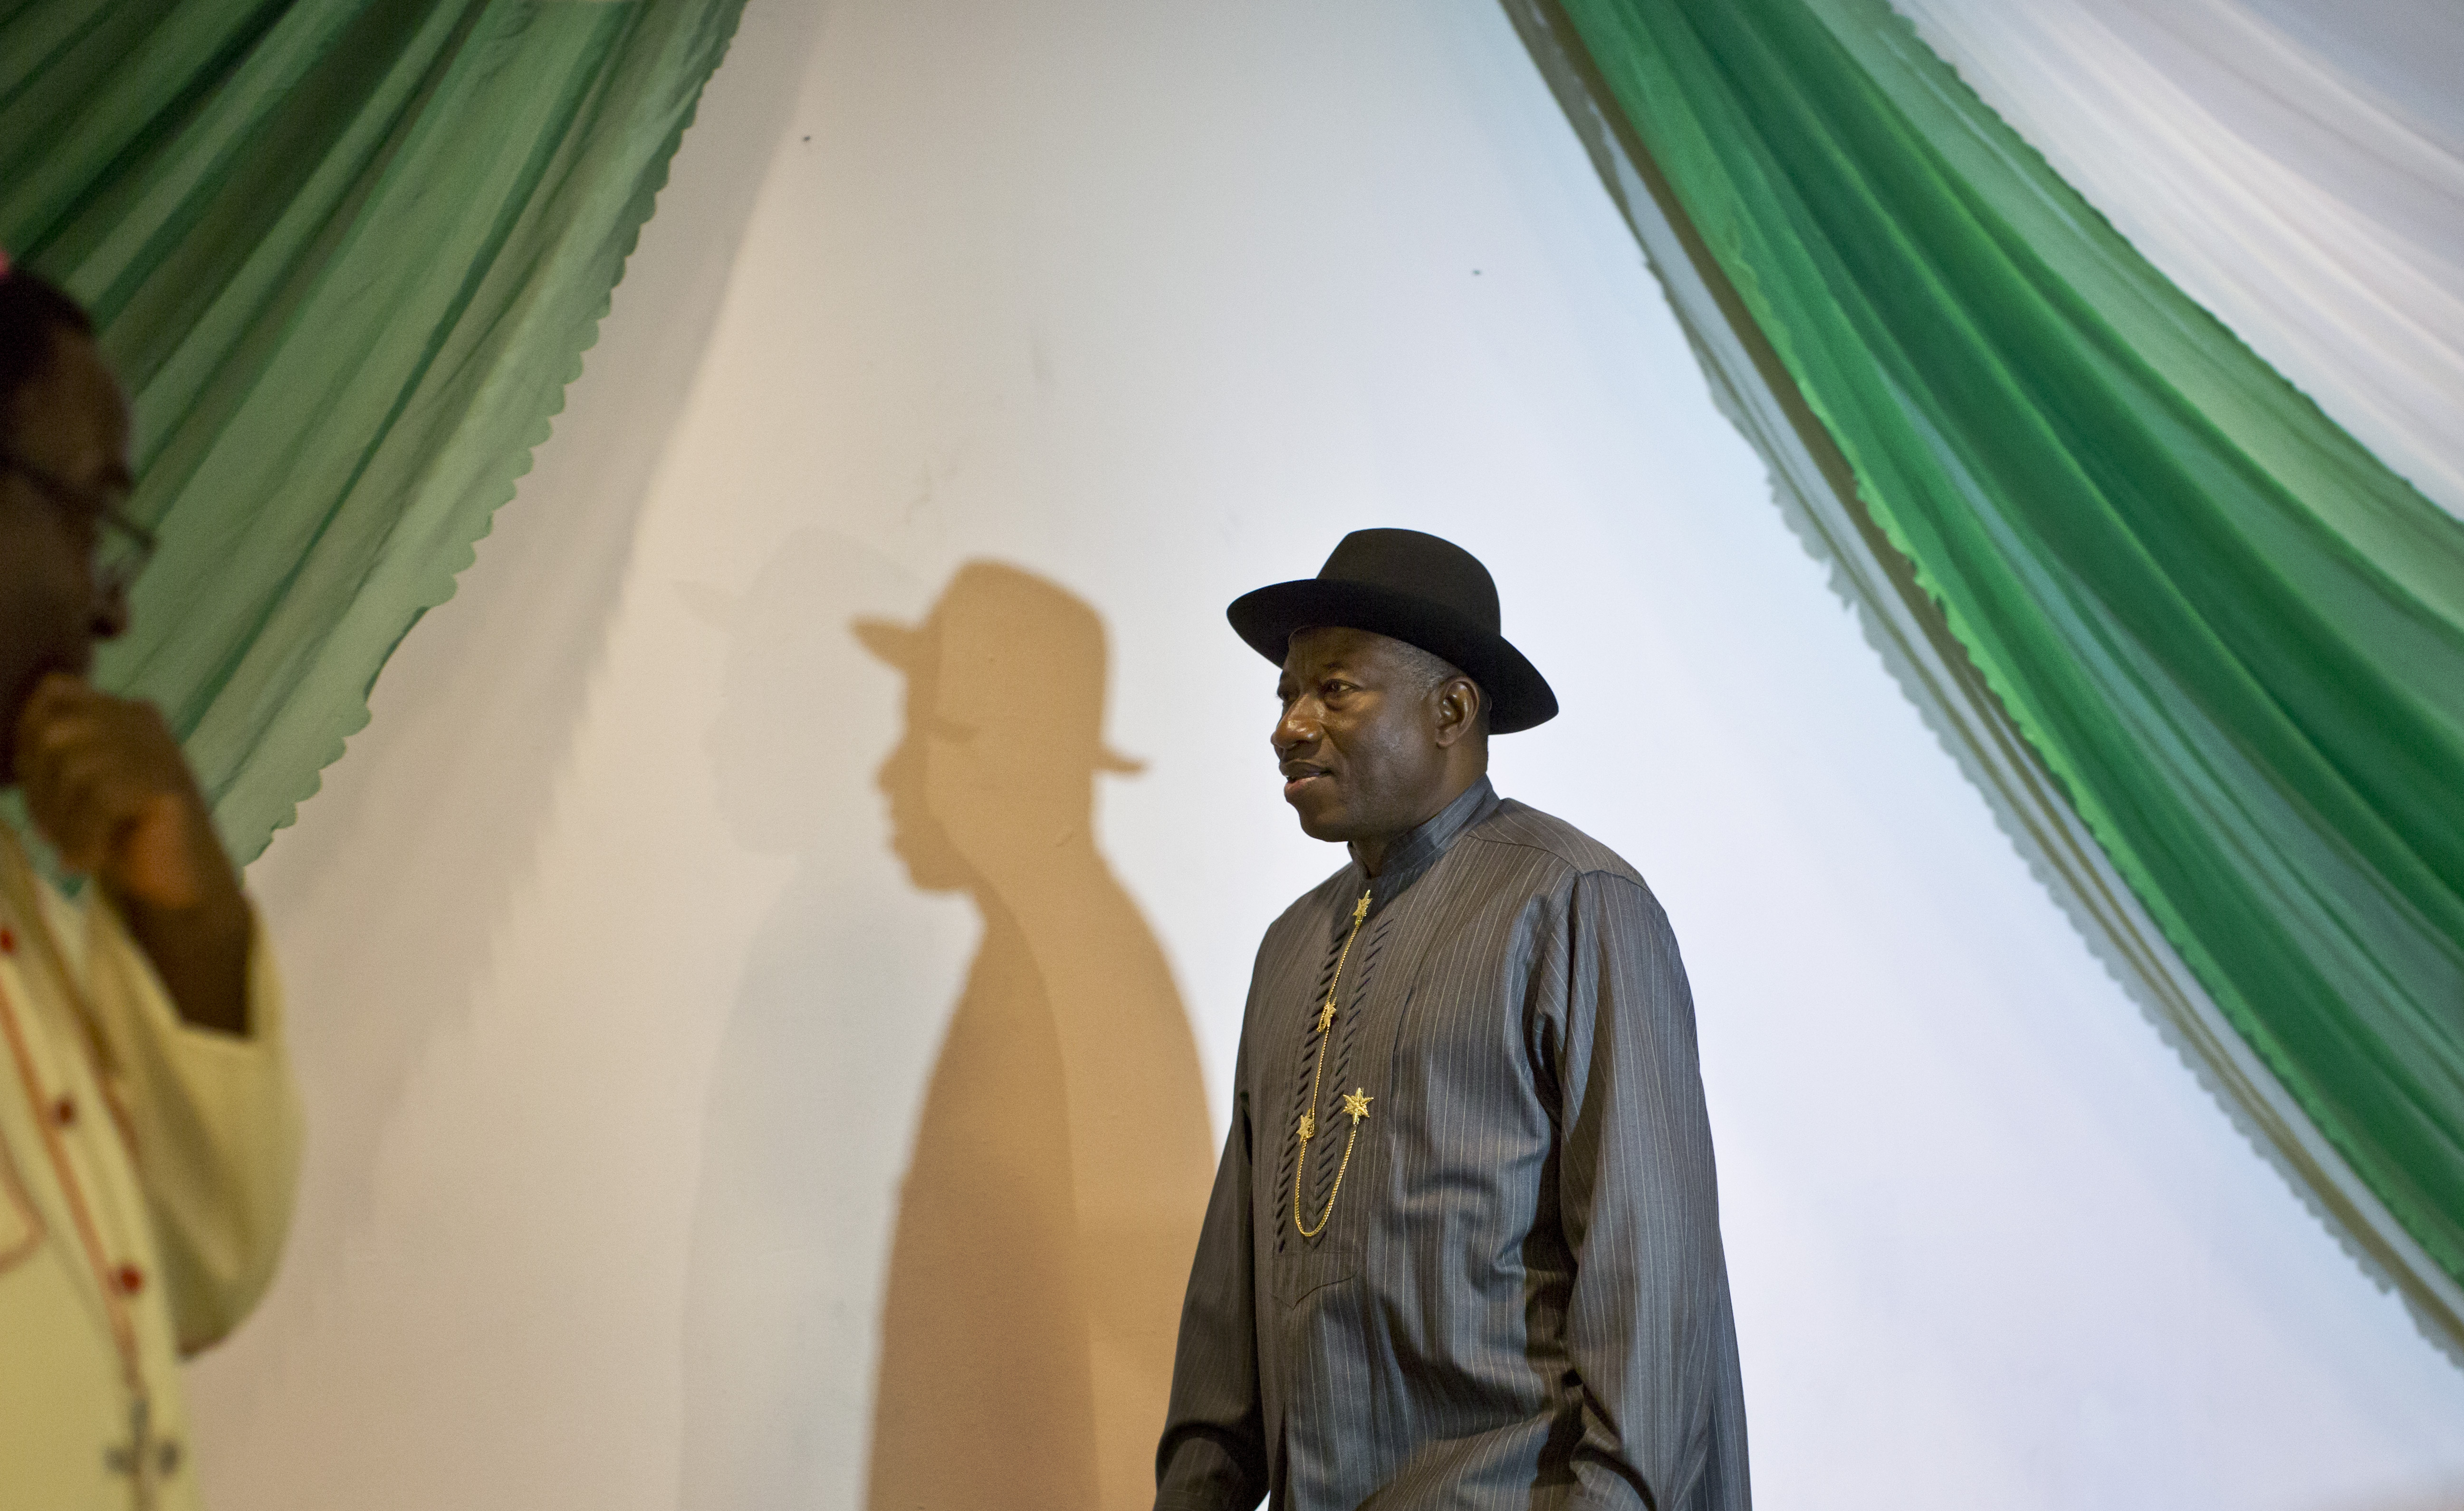 """Nigerian President Goodluck Jonathan, center, arrives on stage to sign a joint renewal with opposition candidate Gen. Muhammadu Buhari of their pledge to hold peaceful """"free, fair, and credible"""" elections, at a hotel in the capital Abuja, Nigeria Thursday, March 26, 2015. Nigerians are due to go to the polls to vote in presidential elections on Saturday. (AP Photo/Ben Curtis)"""